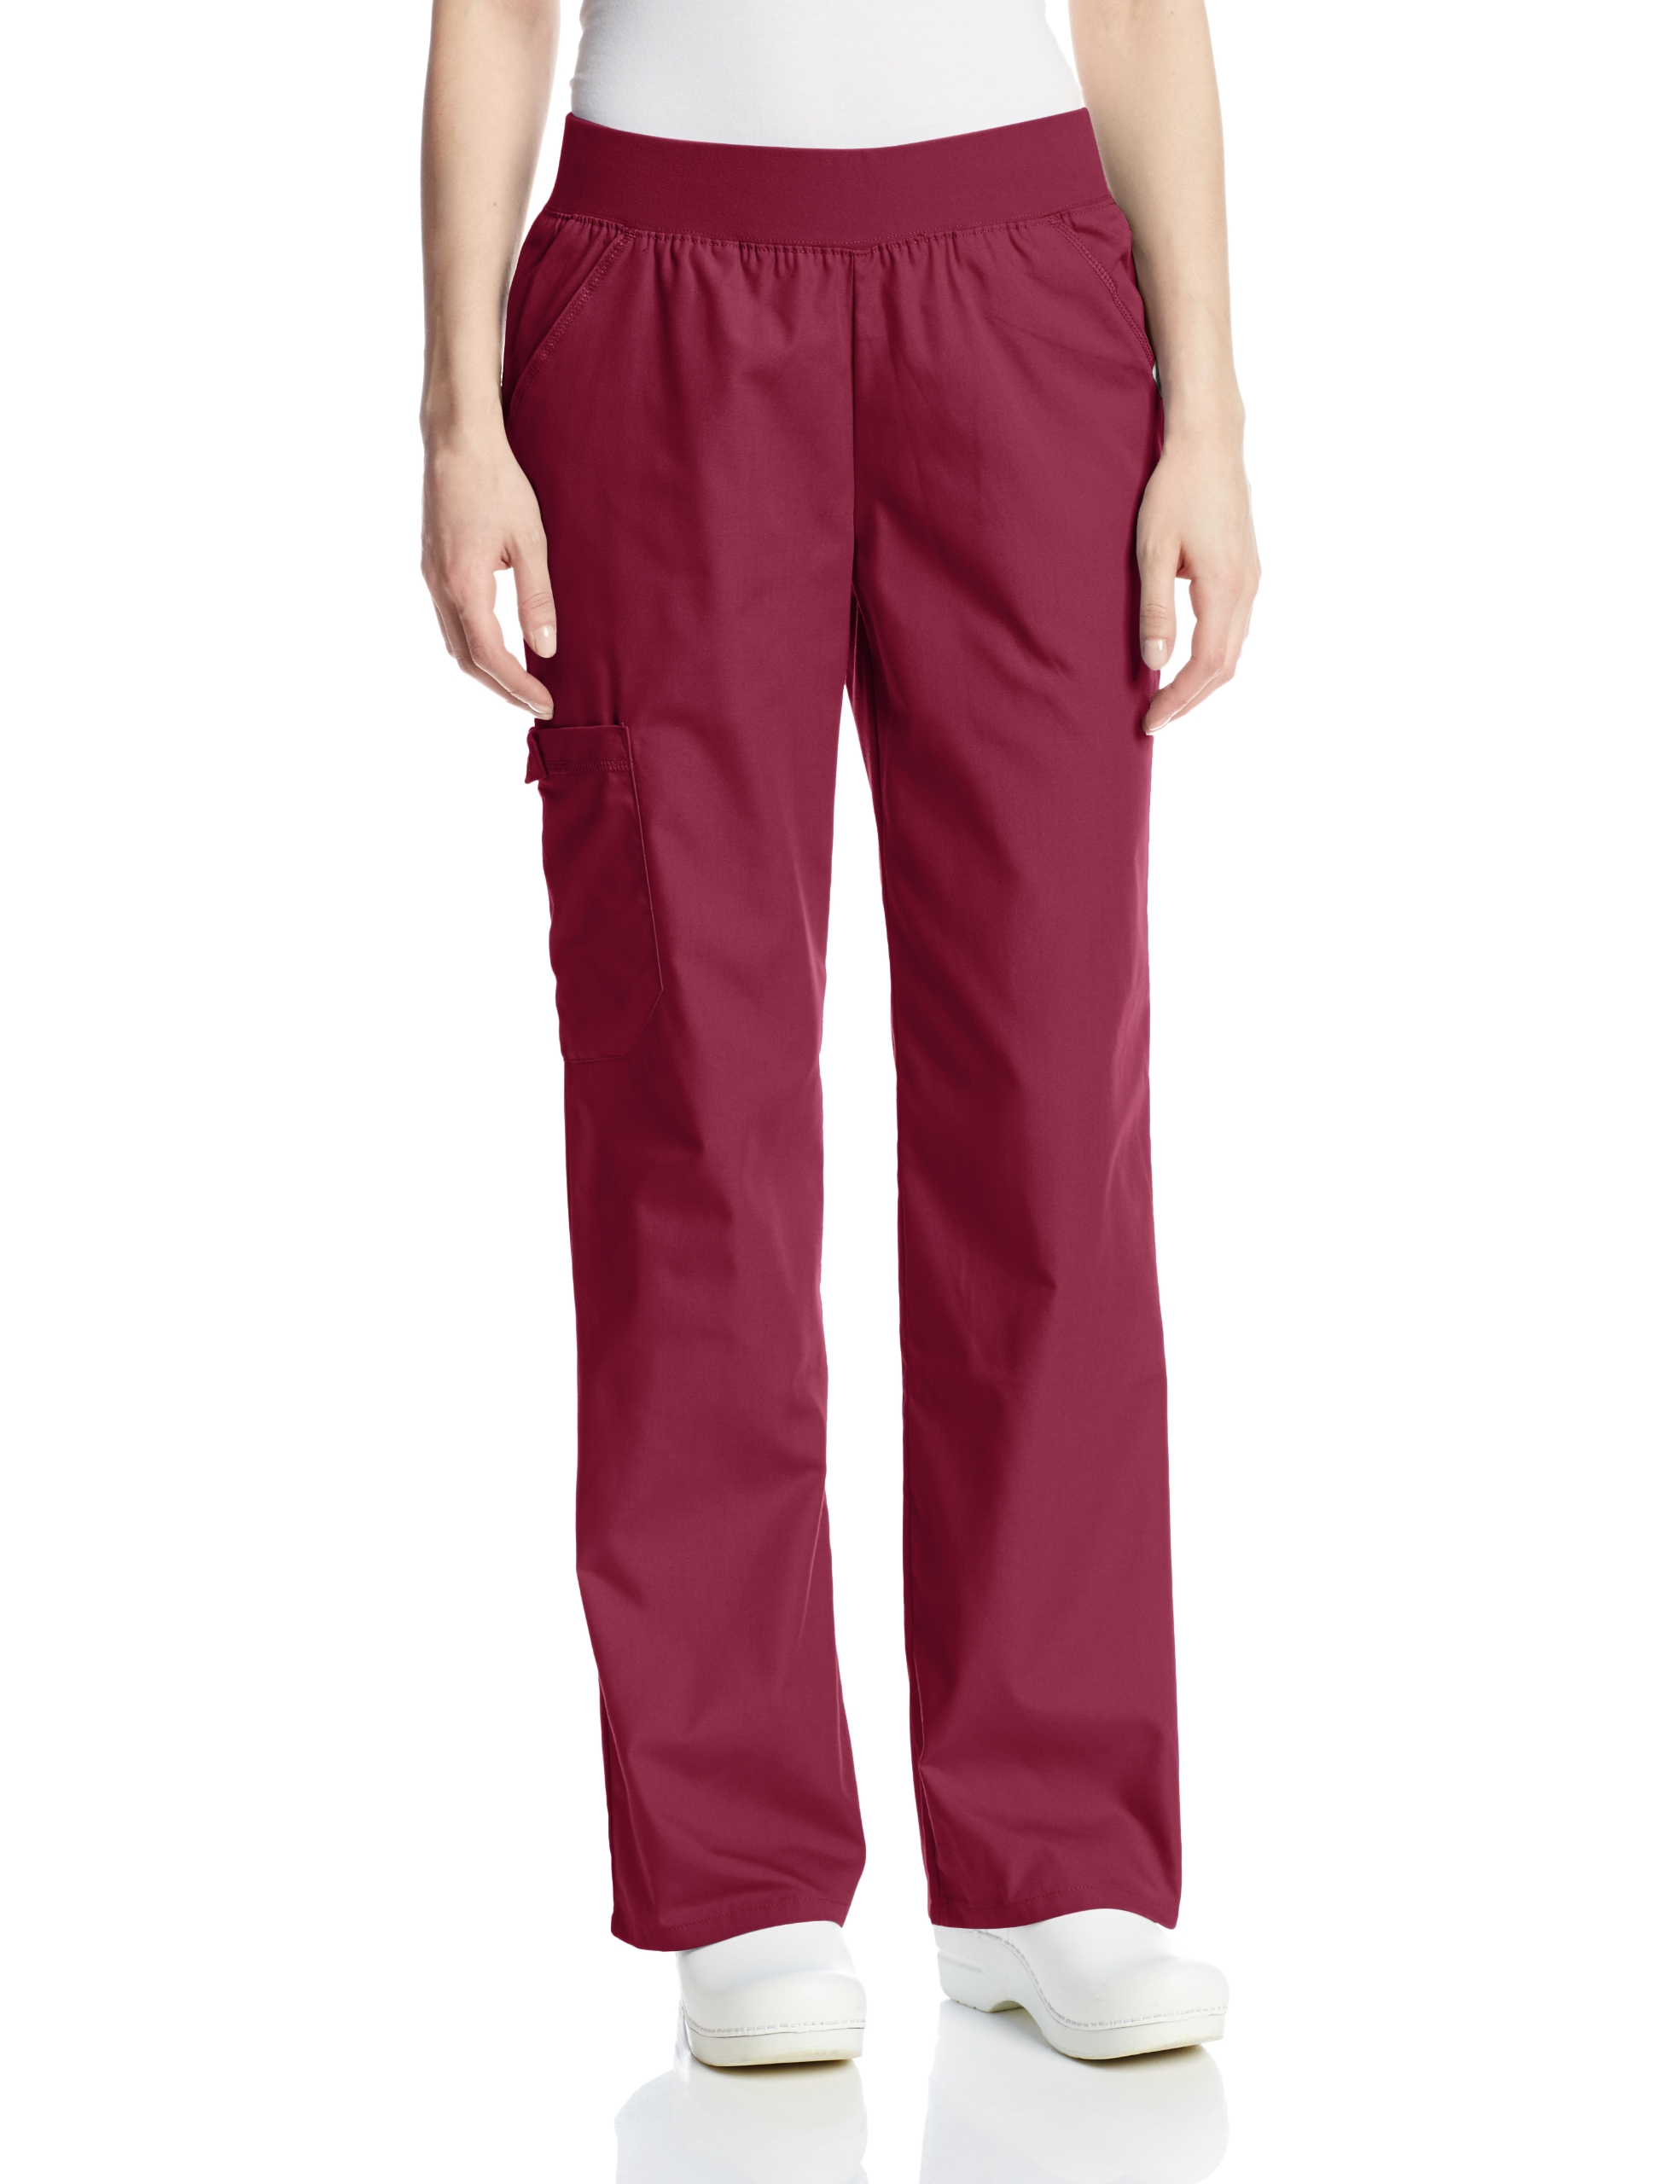 Cherokee Women's Scrubs Flexibles Mid-Rise Knit Waist Pull-On Missy Fit Pant, Wine, Small